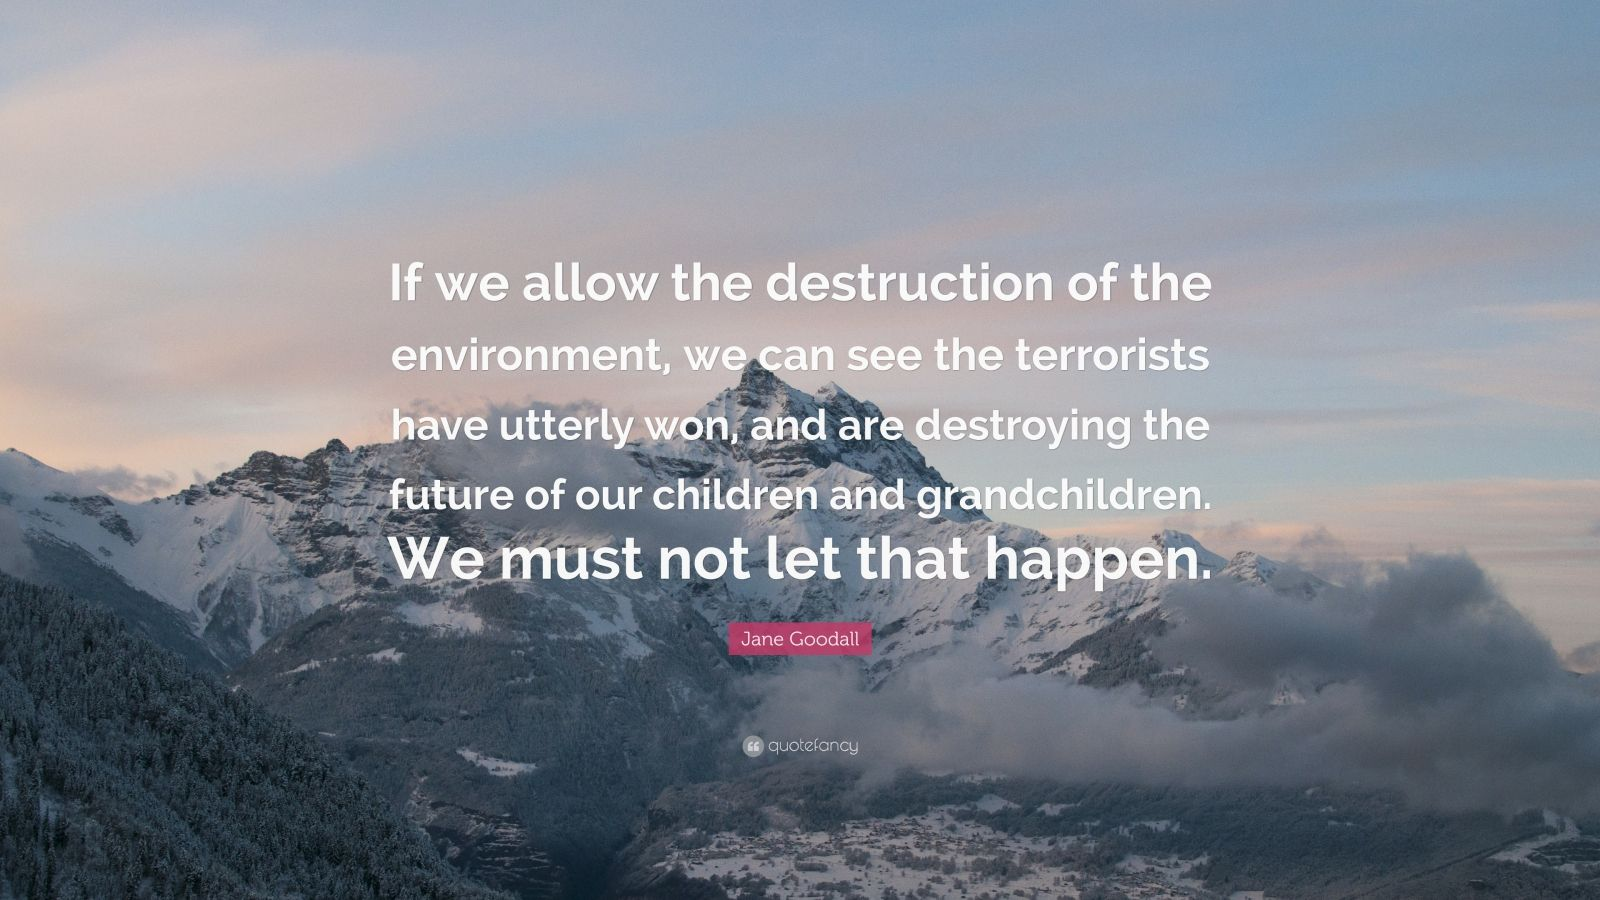 """Jane Goodall Quote: """"If we allow the destruction of the environment, we can see the terrorists have utterly won, and are destroying the future of our children and grandchildren. We must not let that happen."""""""